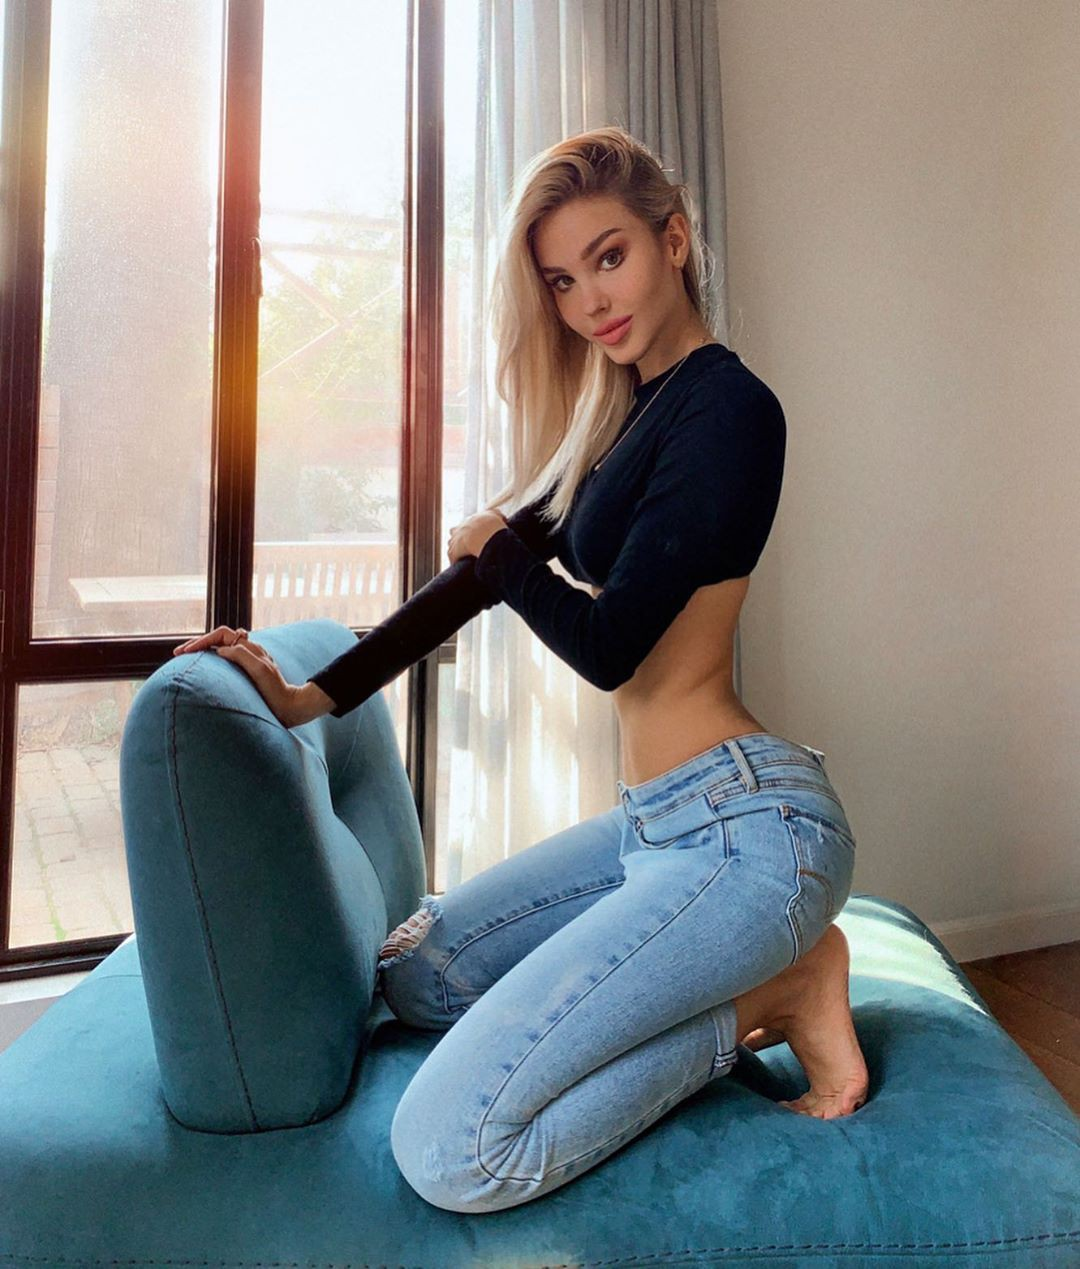 Maria Domark active pants, sportswear, trousers matching dress